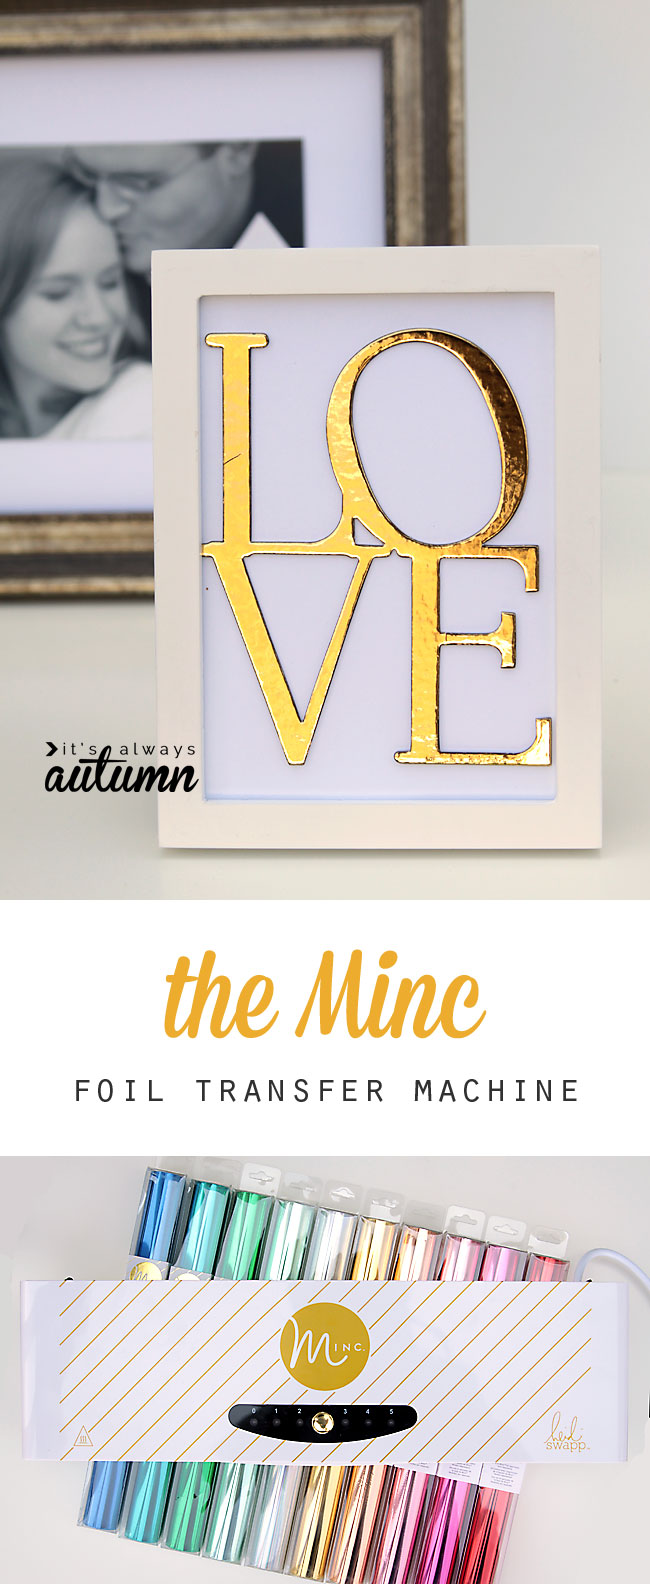 so cool! the new minc foil transfer machine can add colored or gold foil to anything printed with a laser printer. Click through for a video showing how easy it is to use!